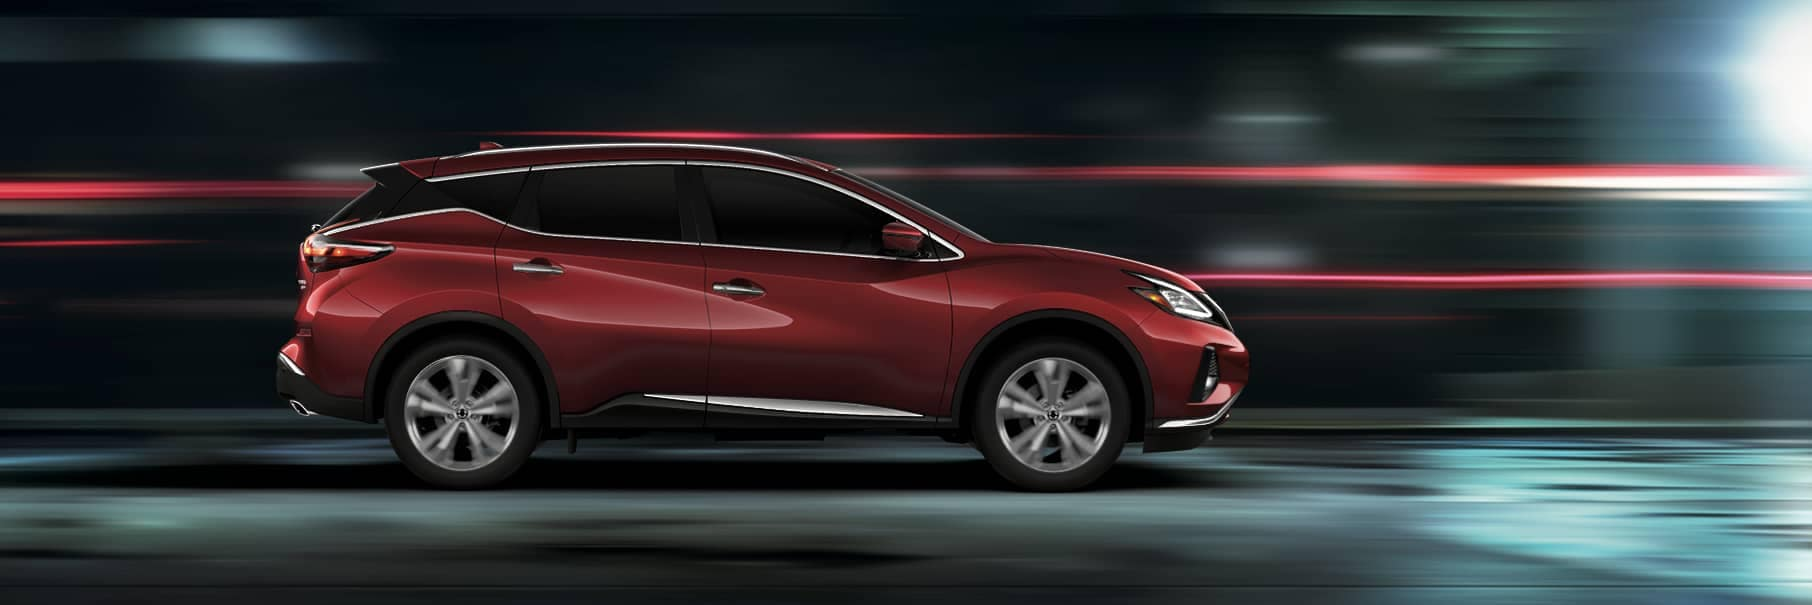 2020 Red Murano, sideview